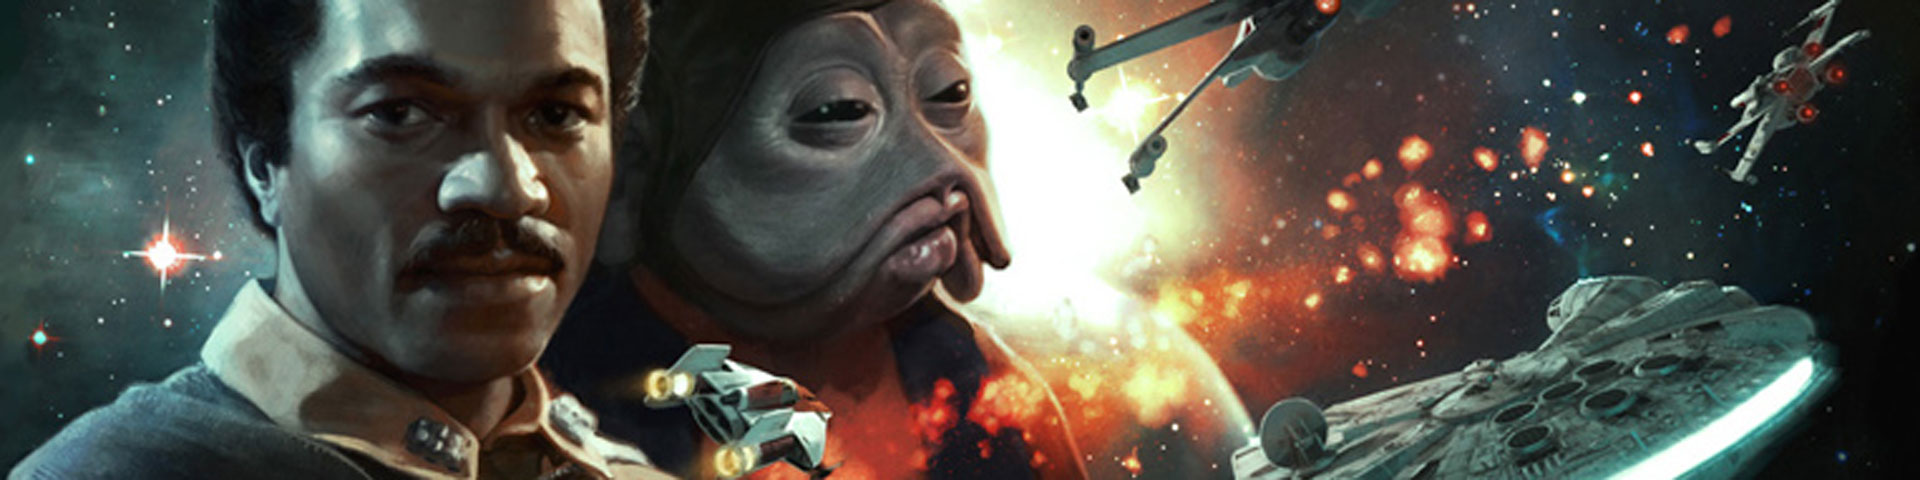 Lando Calrissian and his alien co-pilot Nien Nunb are profiled in the left side of this image. To the right the Millennium Falcon and a flight of starfighters soar past.